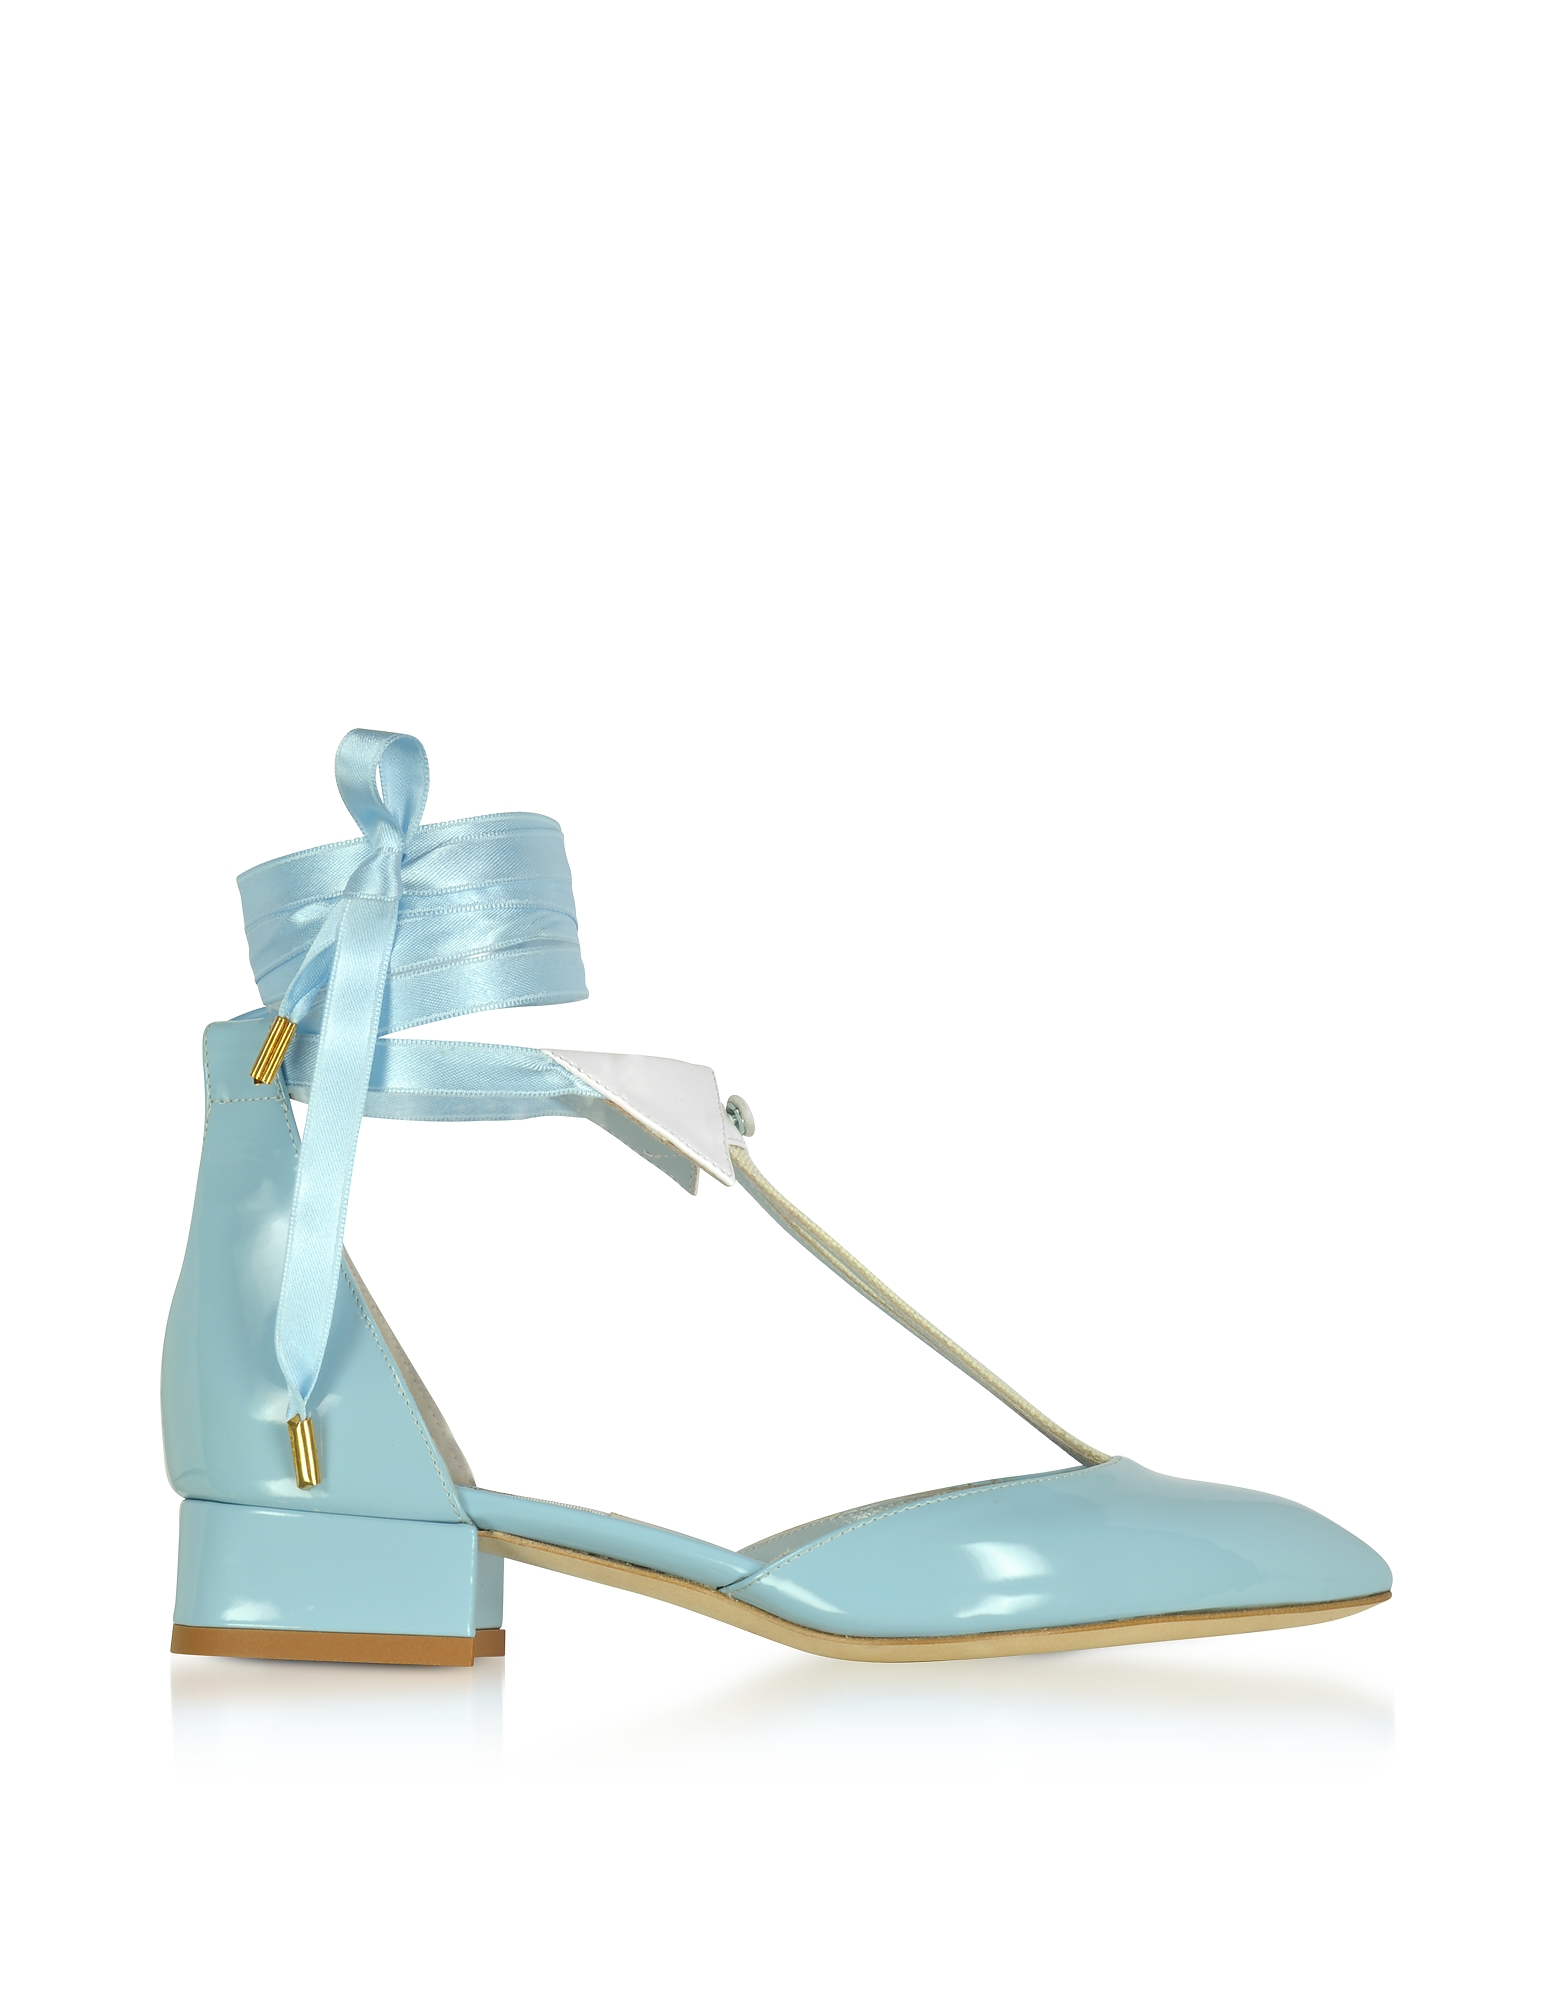 Olgana Paris Designer Shoes LIdeal Baby Blue Patent Leather MidHeel Pump